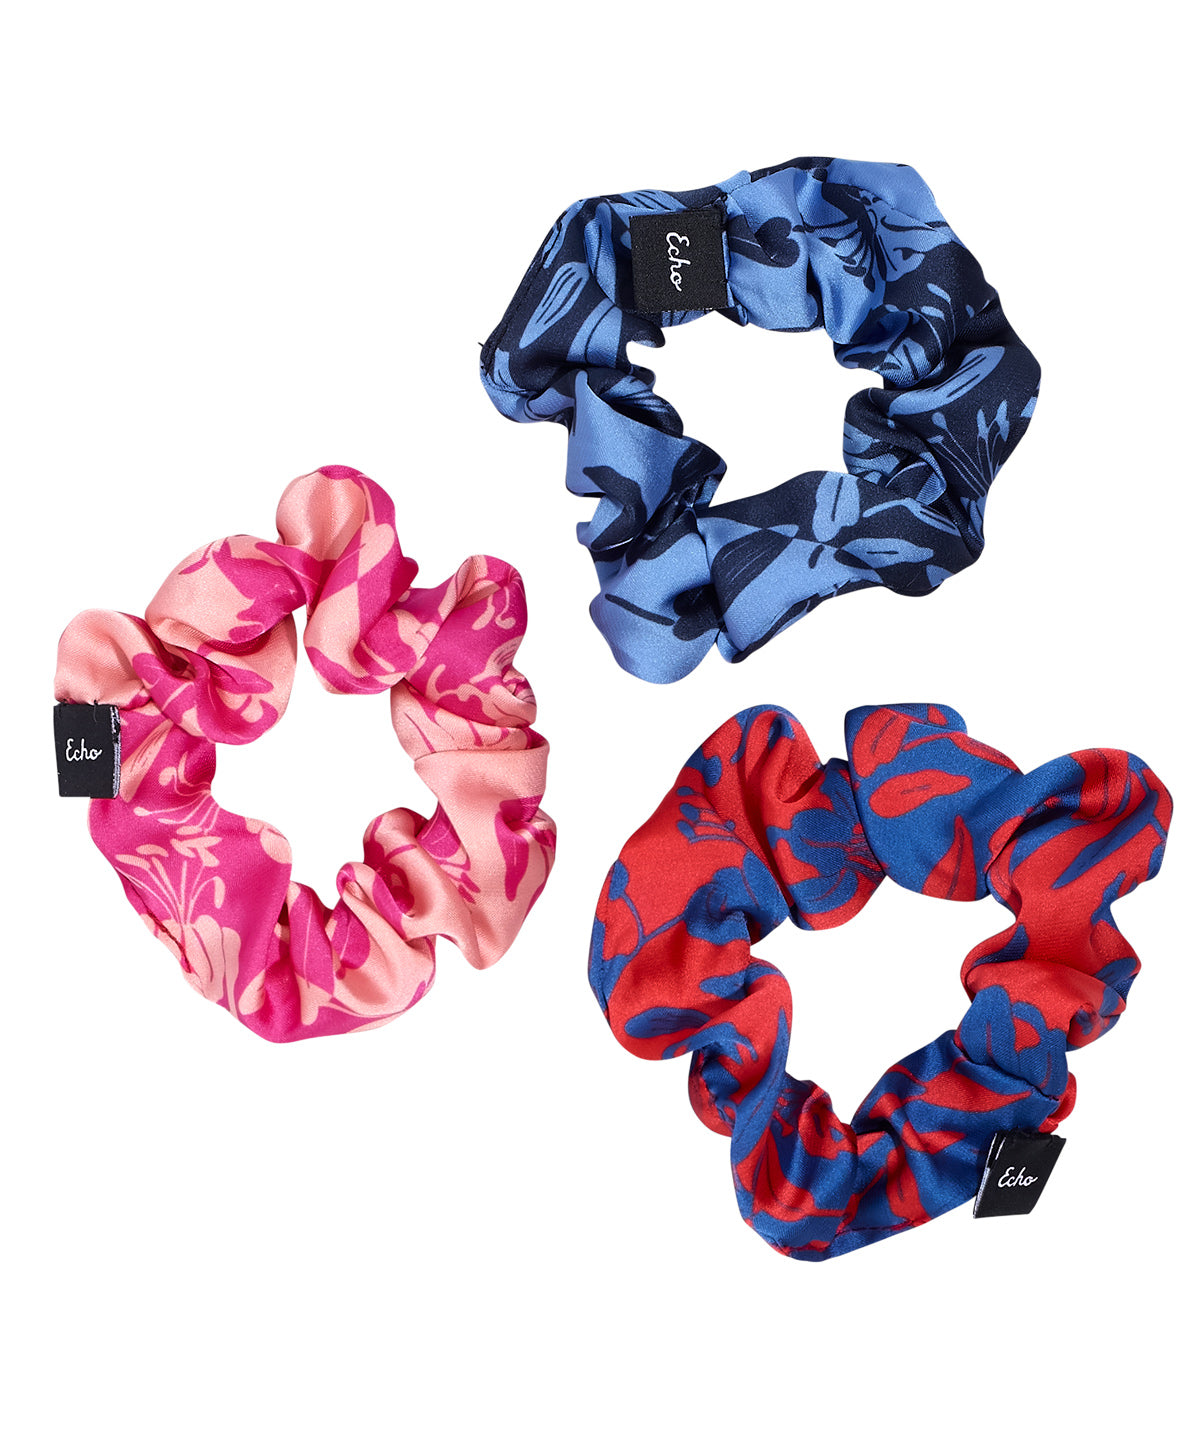 Passion Flower - 3-Pack Small Scrunchie Set